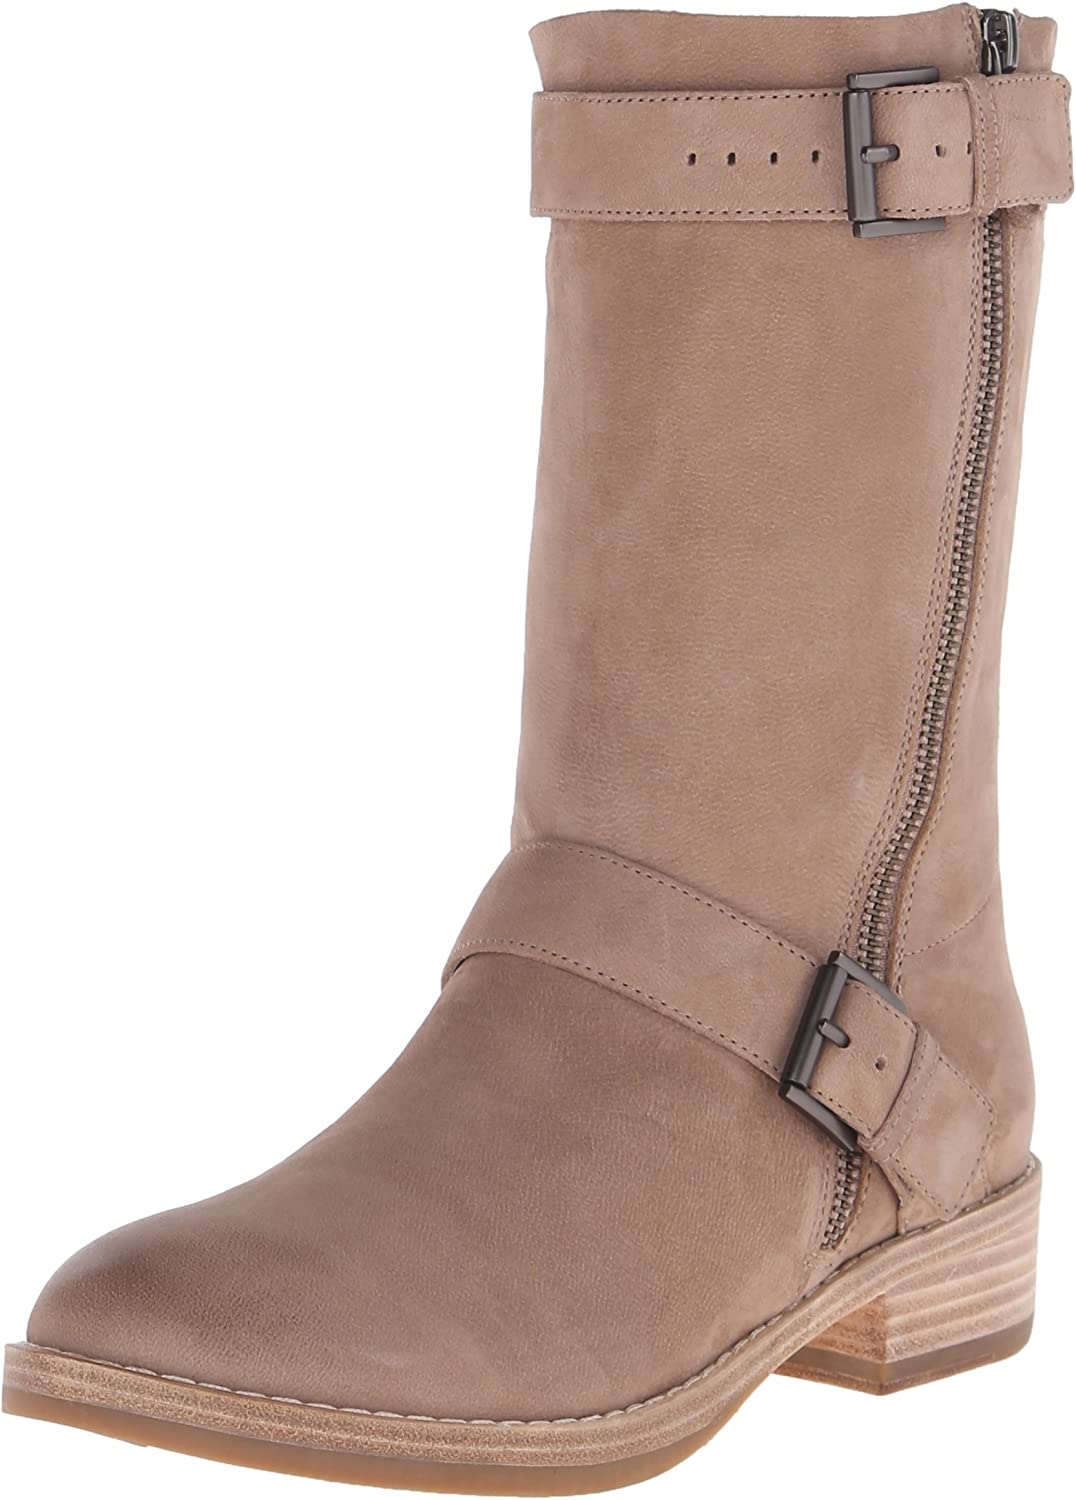 EileenFisher Women's Log Harness Boot